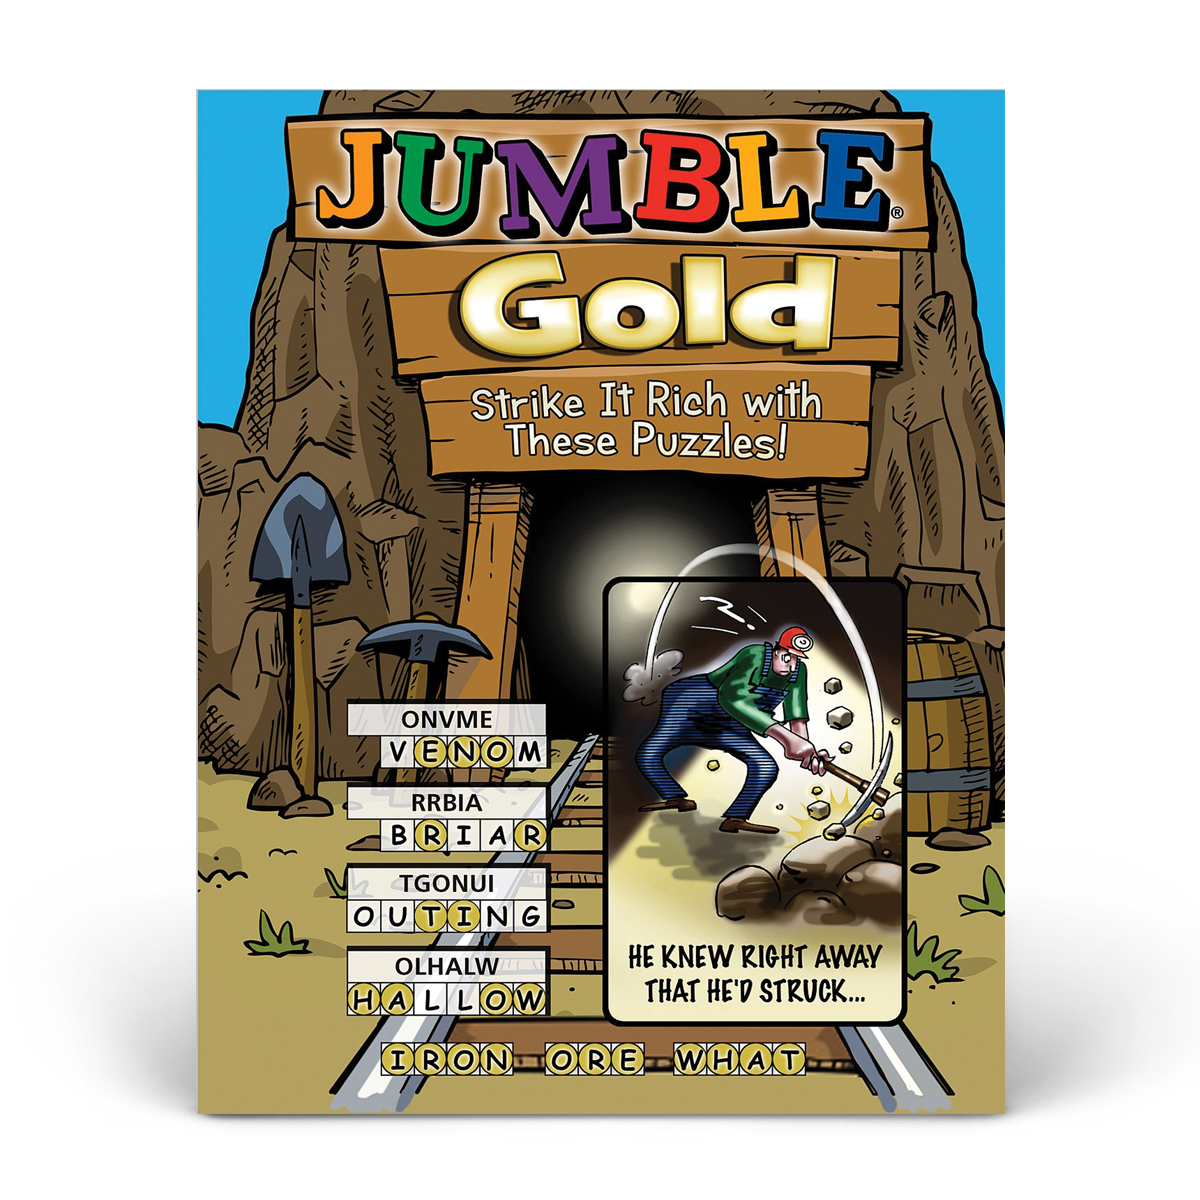 Jumble! Gold: Strike It Rich with These Puzzles!